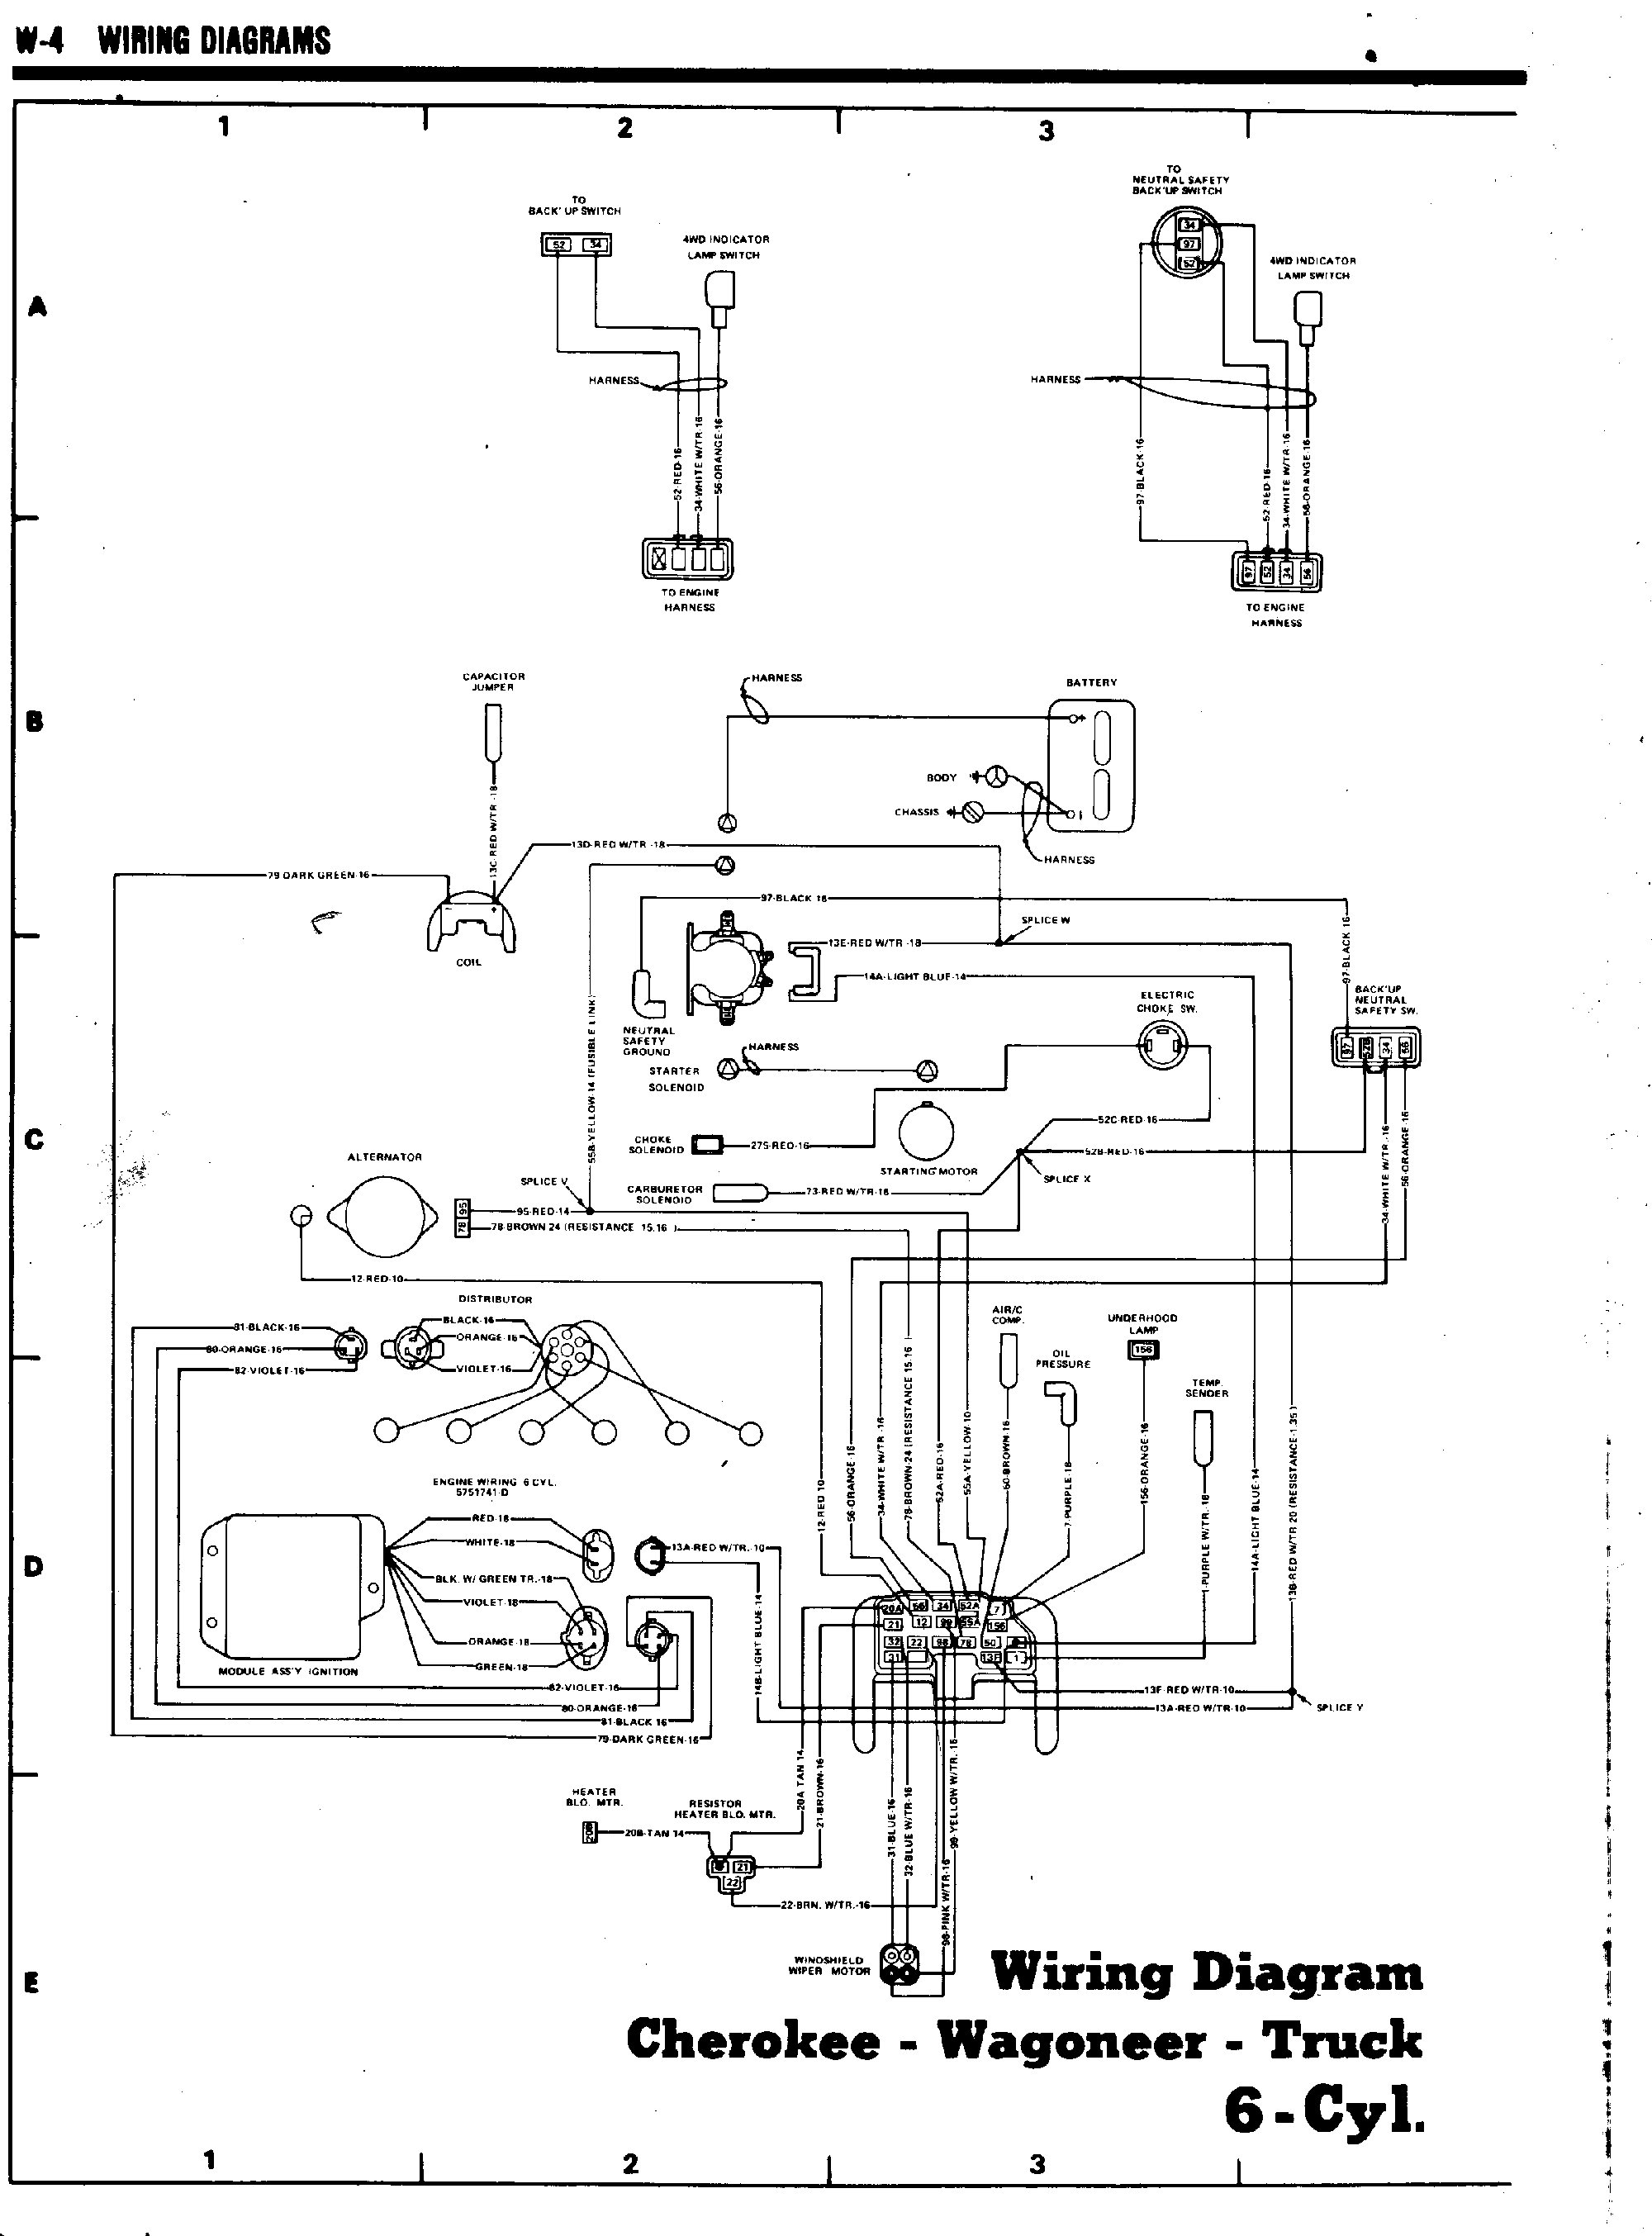 1980_cherokee_wagoneer_truck_6cyl_pg1 tom 'oljeep' collins fsj wiring page 1978 Corvette Wiring Diagram at crackthecode.co